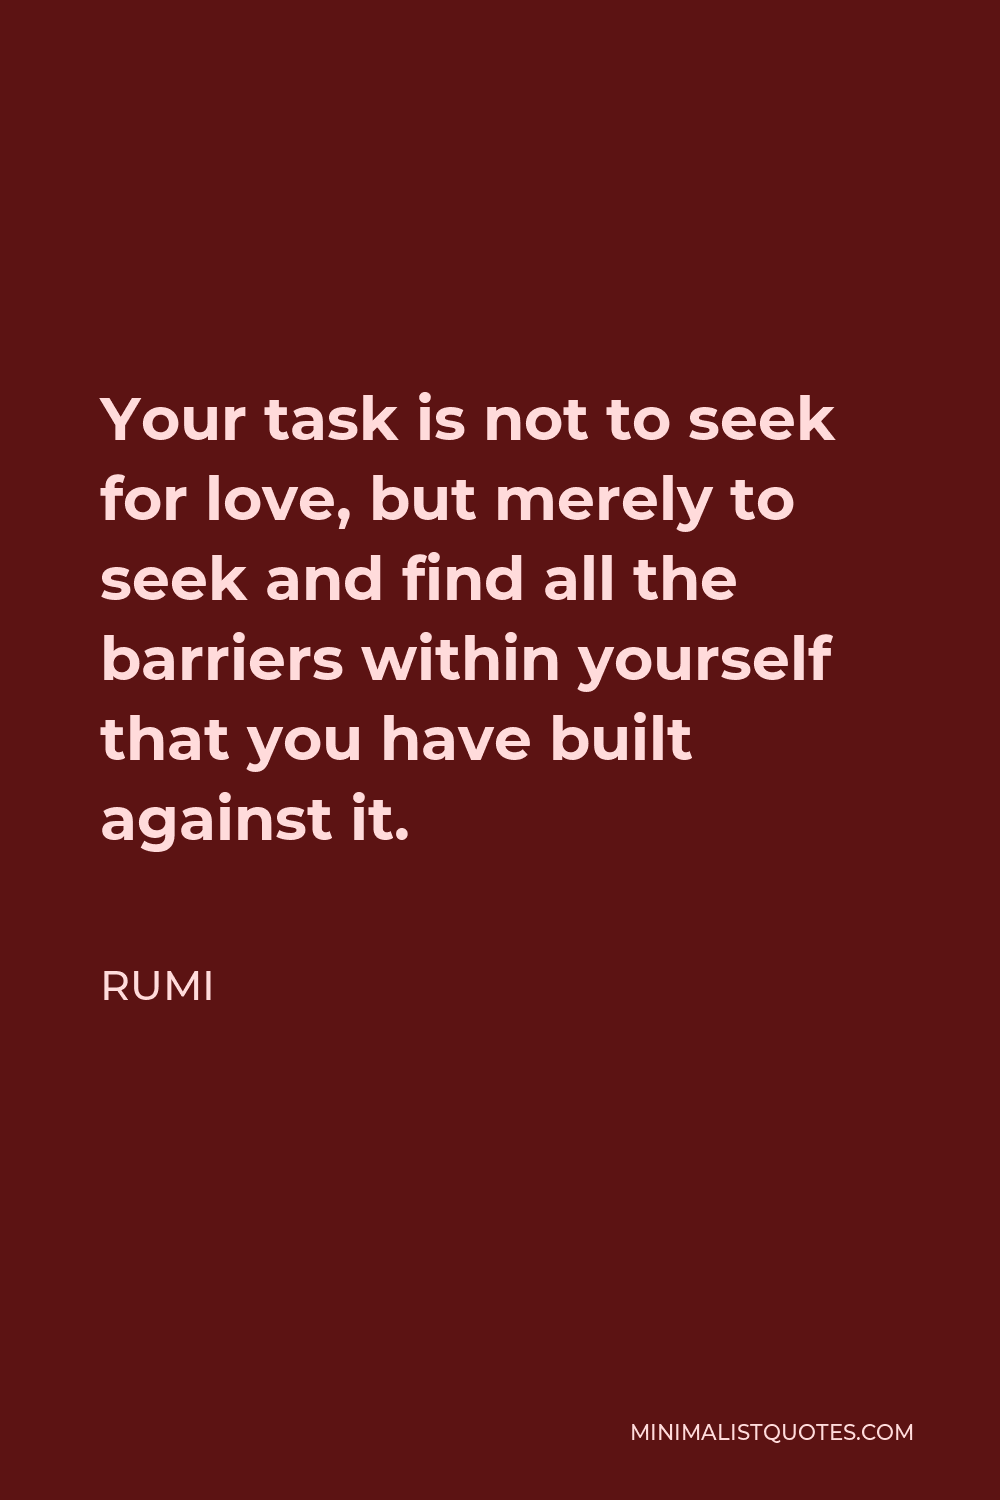 Rumi Quote - Your task is not to seek for love, but merely to seek and find all the barriers within yourself that you have built against it.